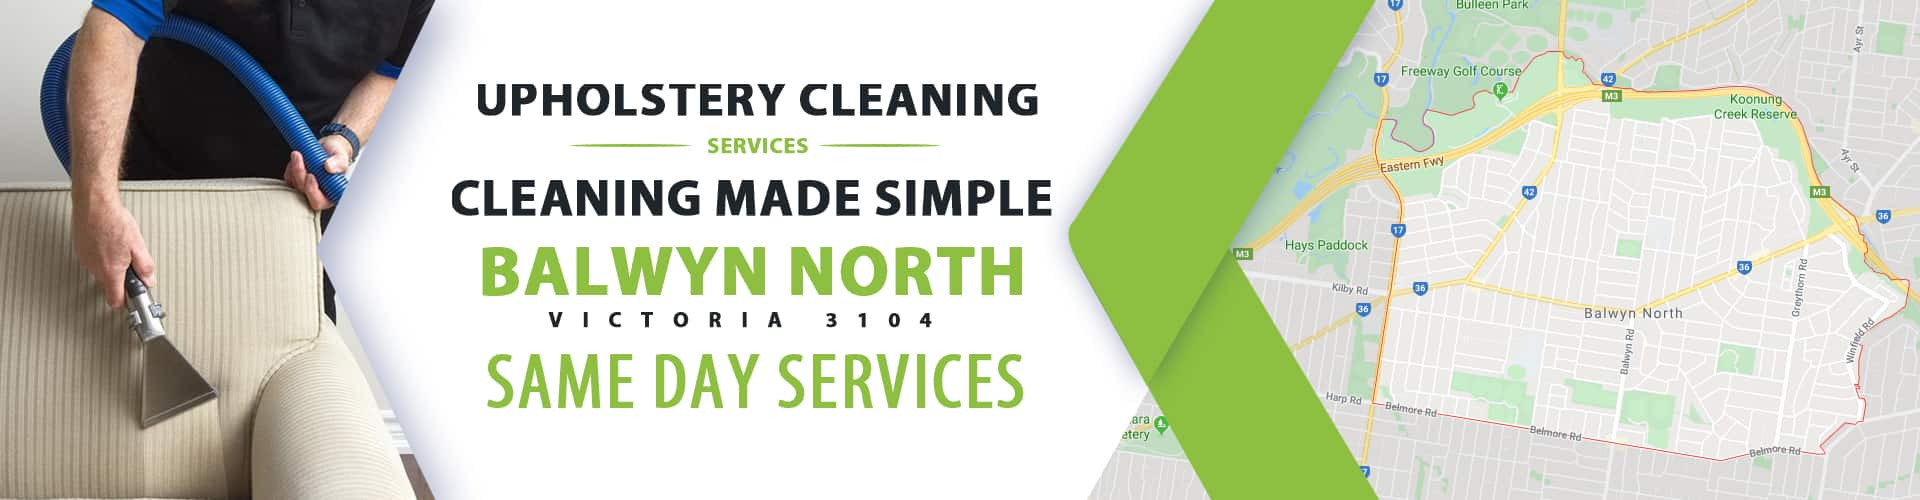 Upholstery Cleaning Balwyn North